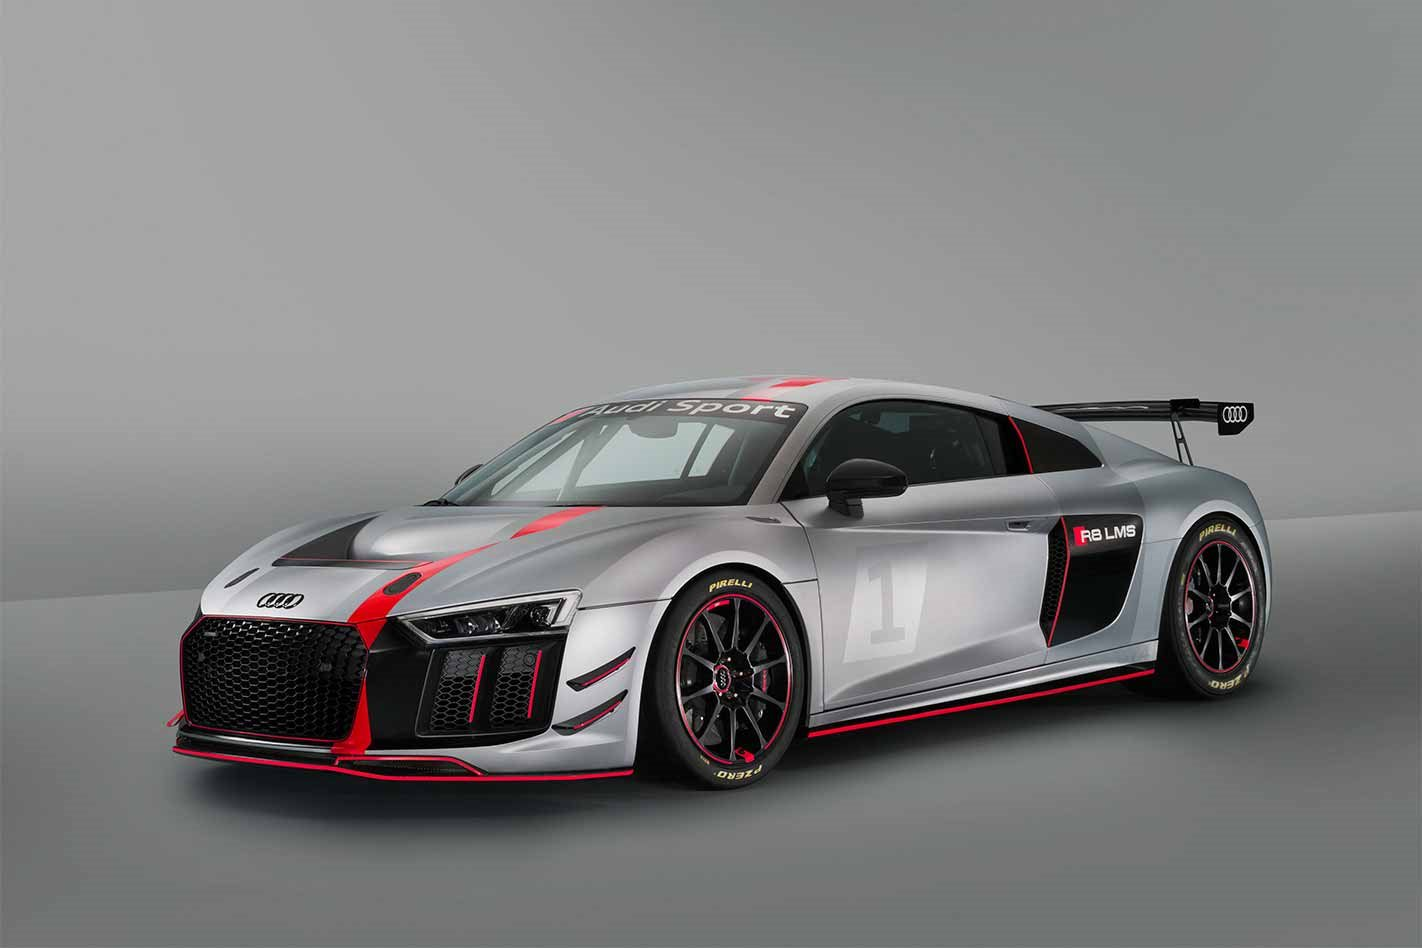 new york motor show 2018 audi r8 lms gt4. Black Bedroom Furniture Sets. Home Design Ideas